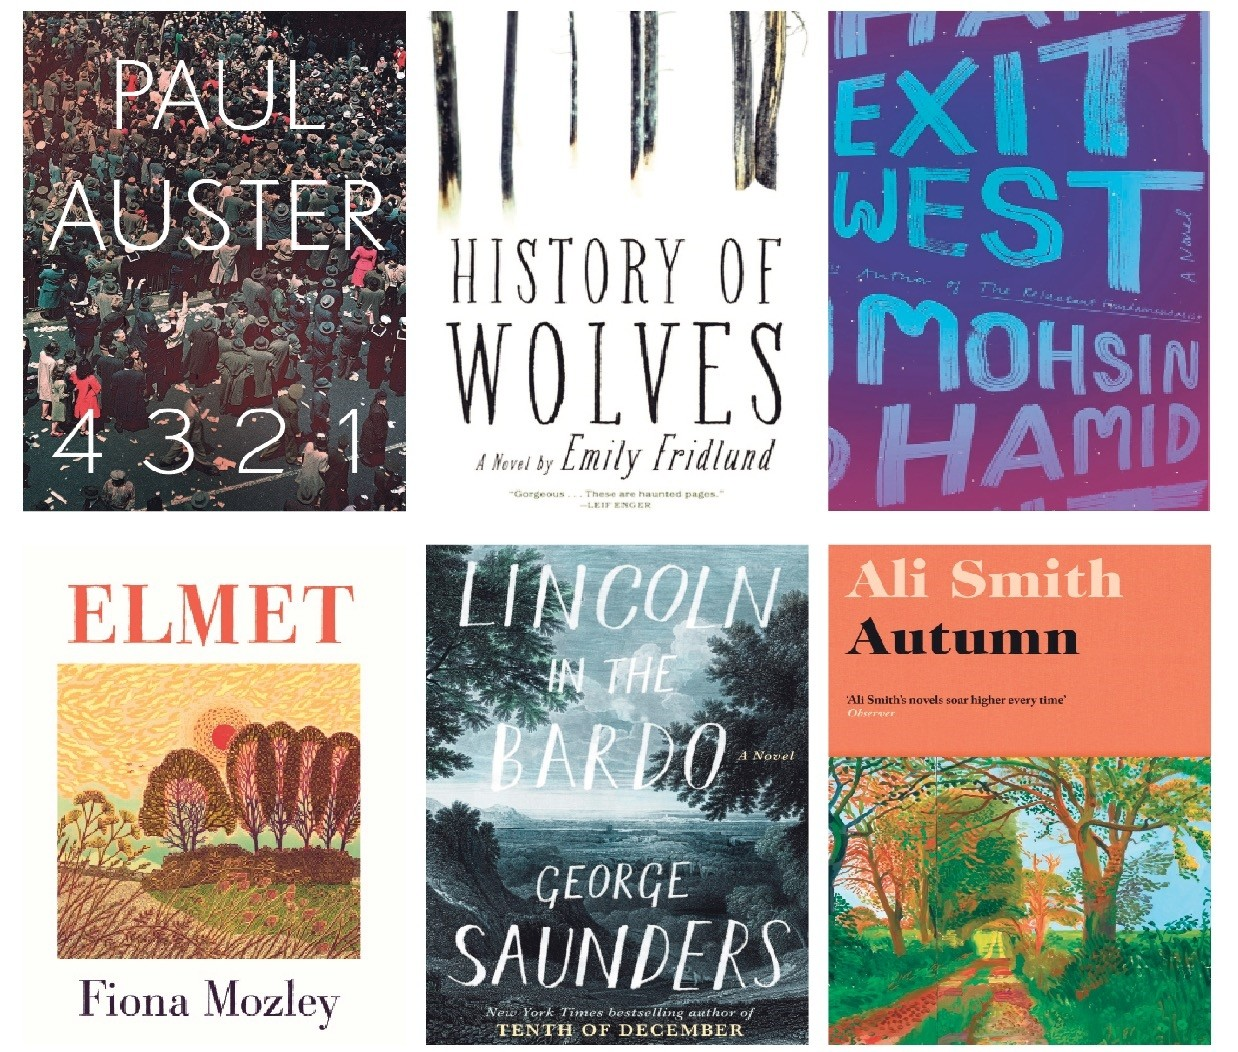 Photos show the nominees for the Man Booker Prize, whose winner will be announced on Oct. 17.